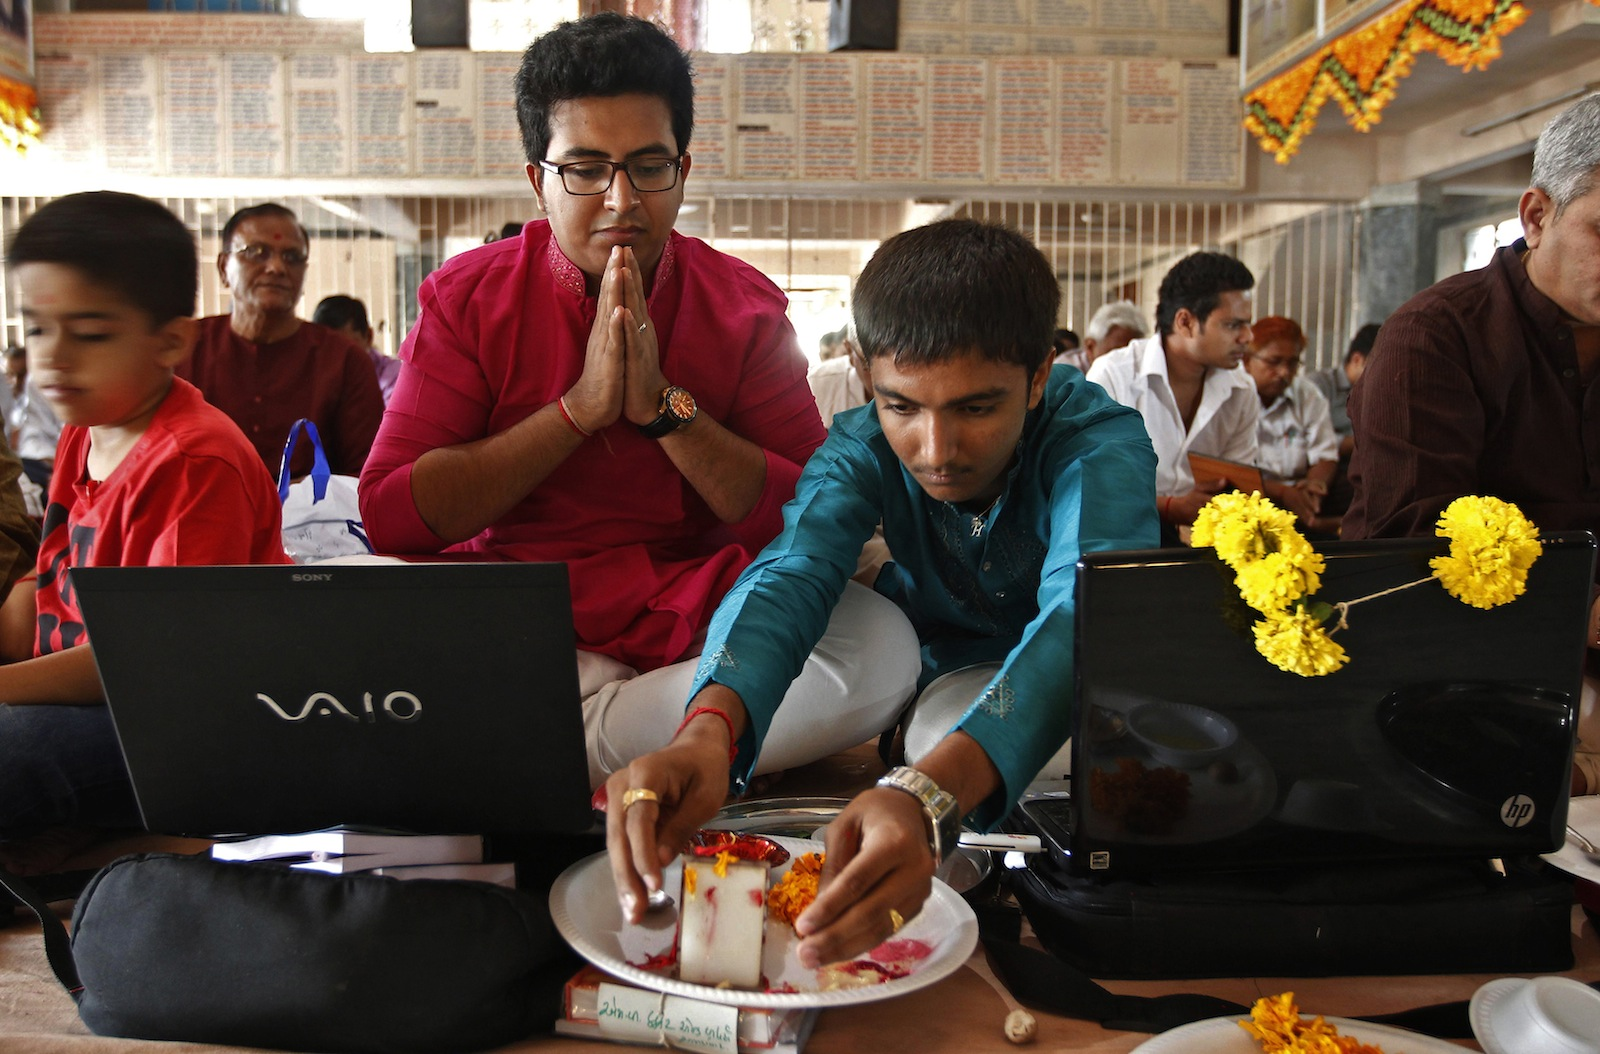 Businessmen offer prayers to Hindu gods in front of their laptops as part of a ritual to worship the Hindu deity of wealth Goddess Lakshmi on Diwali, the Indian festival of lights, in the western Indian city of Ahmedabad.